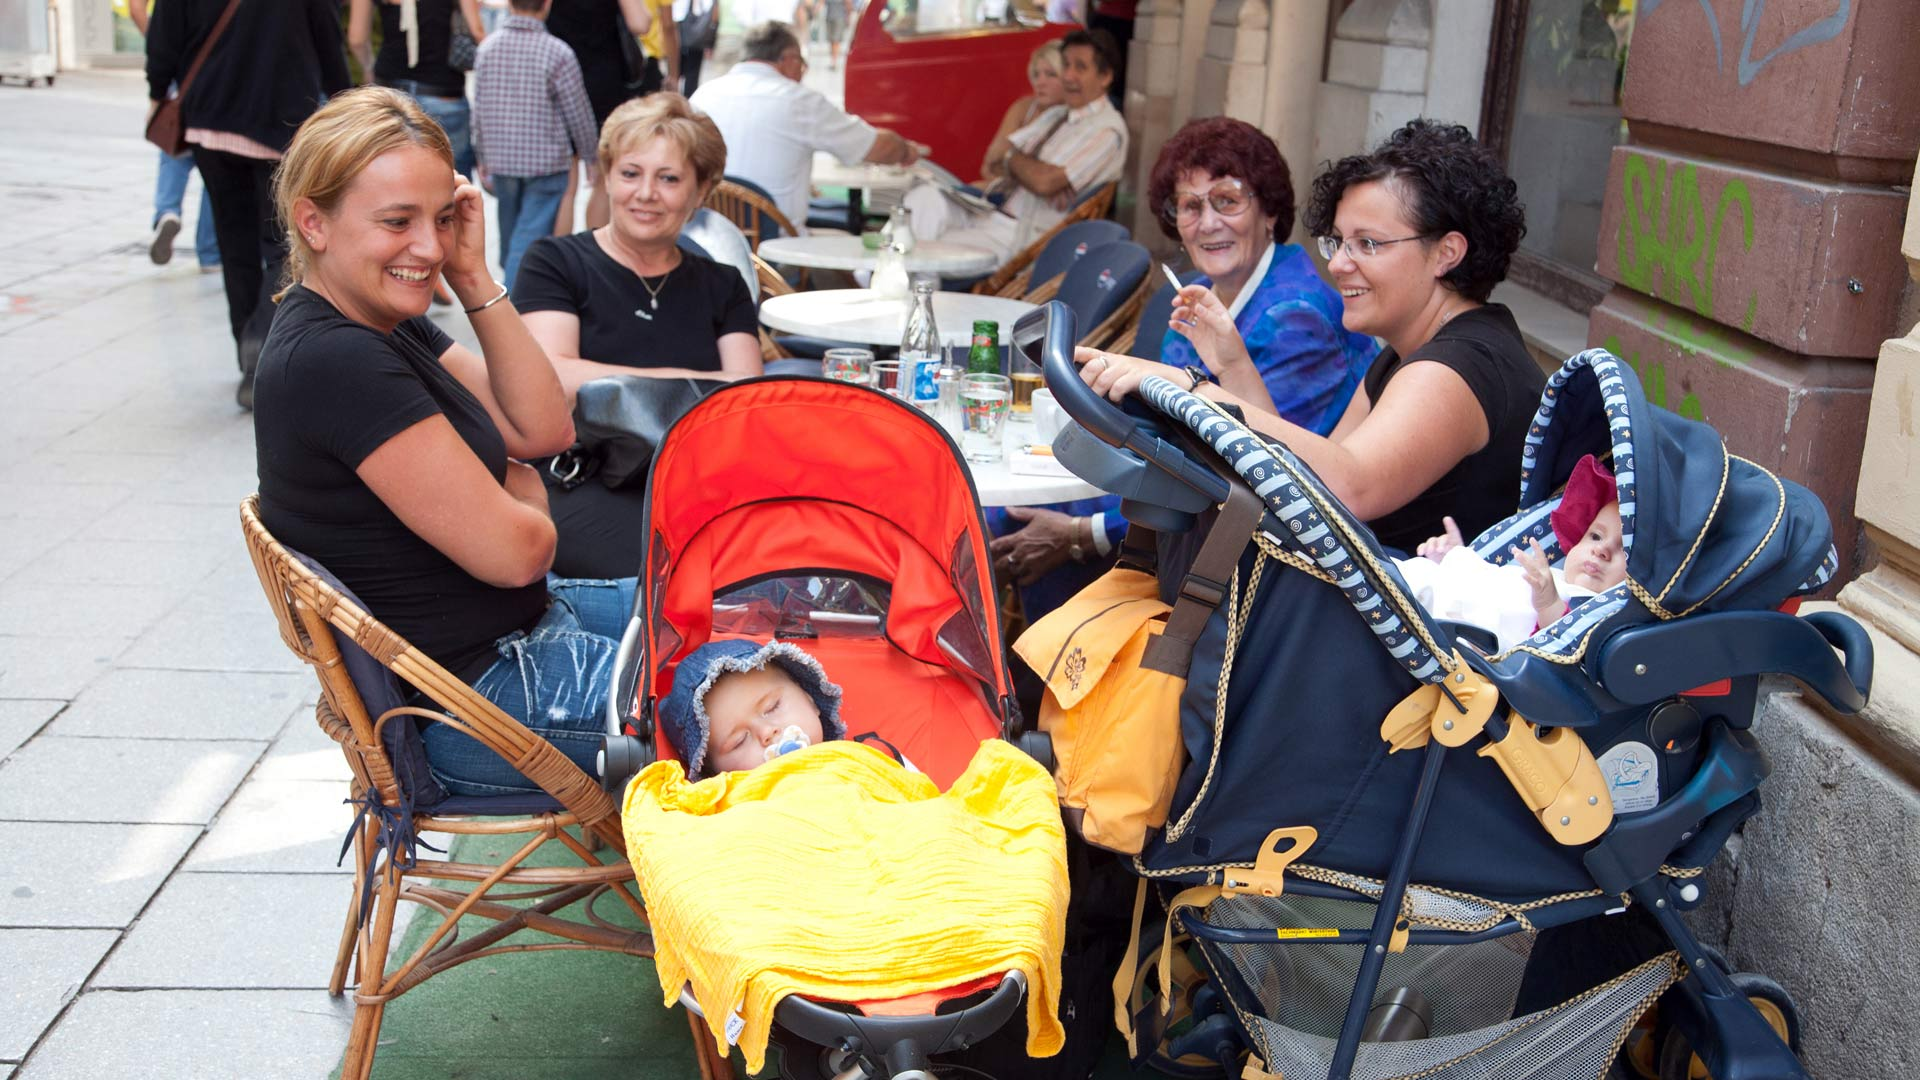 Women and babies in an outdoor café